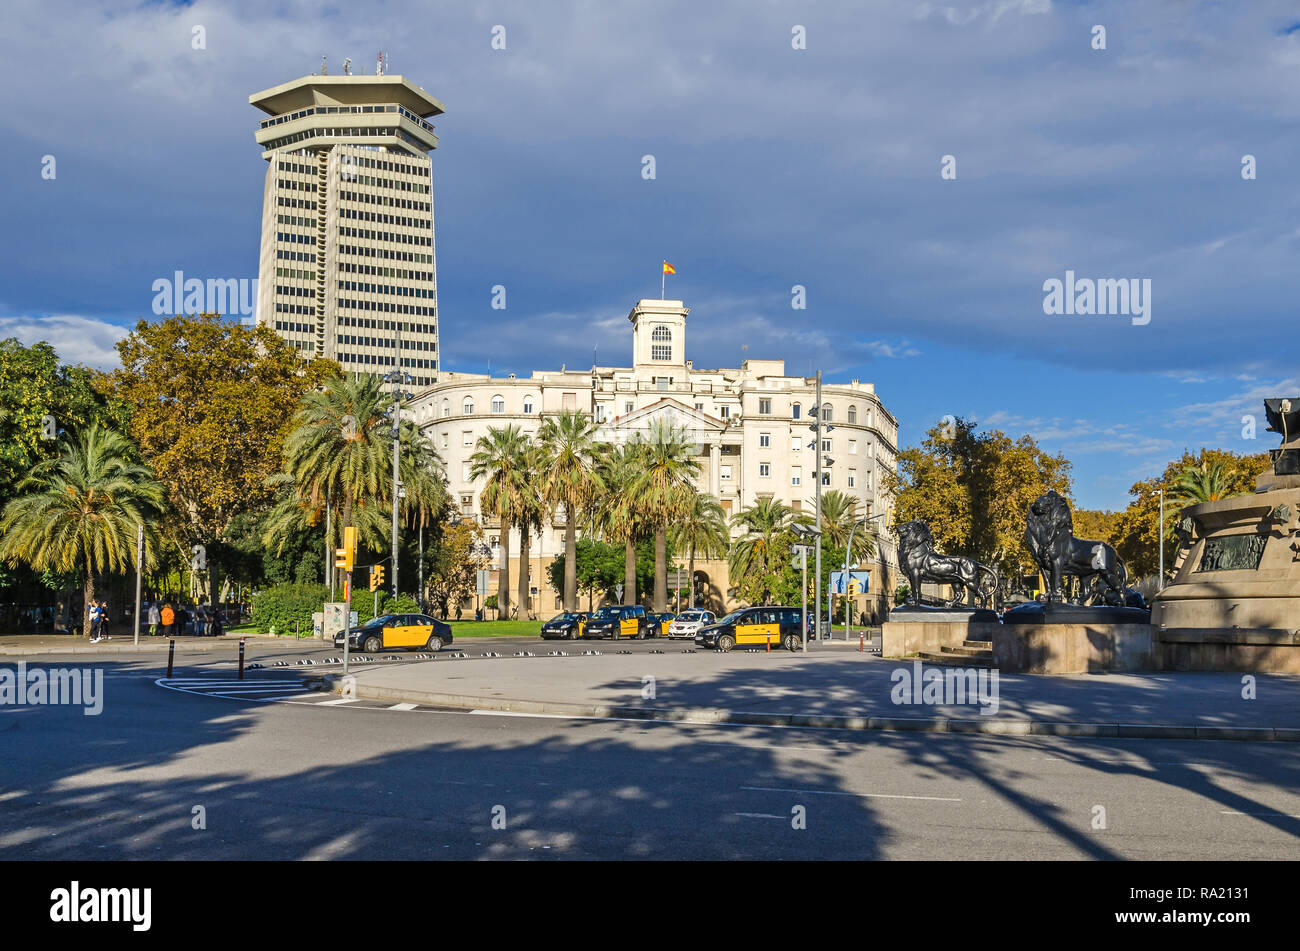 Barcelona, Spain - November 10, 2018: Building of the Military Base at the lower end of La Rambla as seen from The Columbus Monument and Edifici Colon - Stock Image